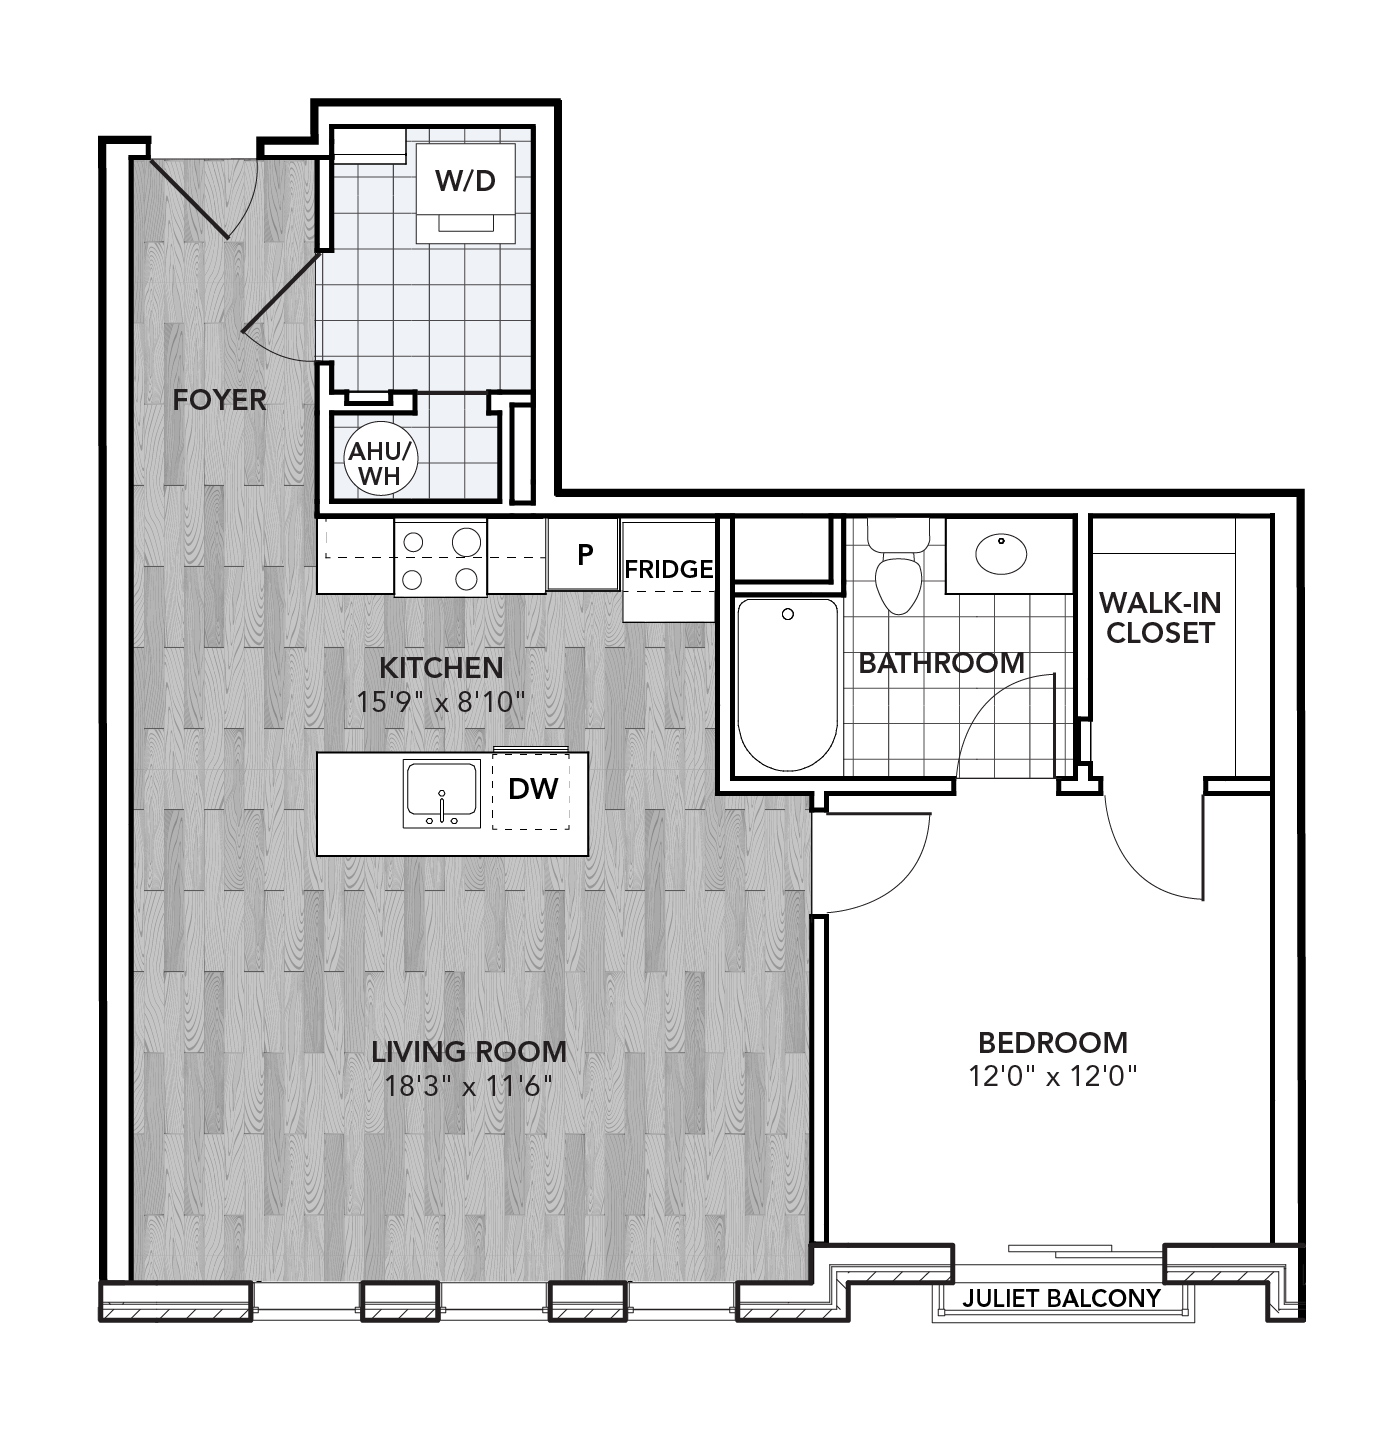 Chestnut square a61 793